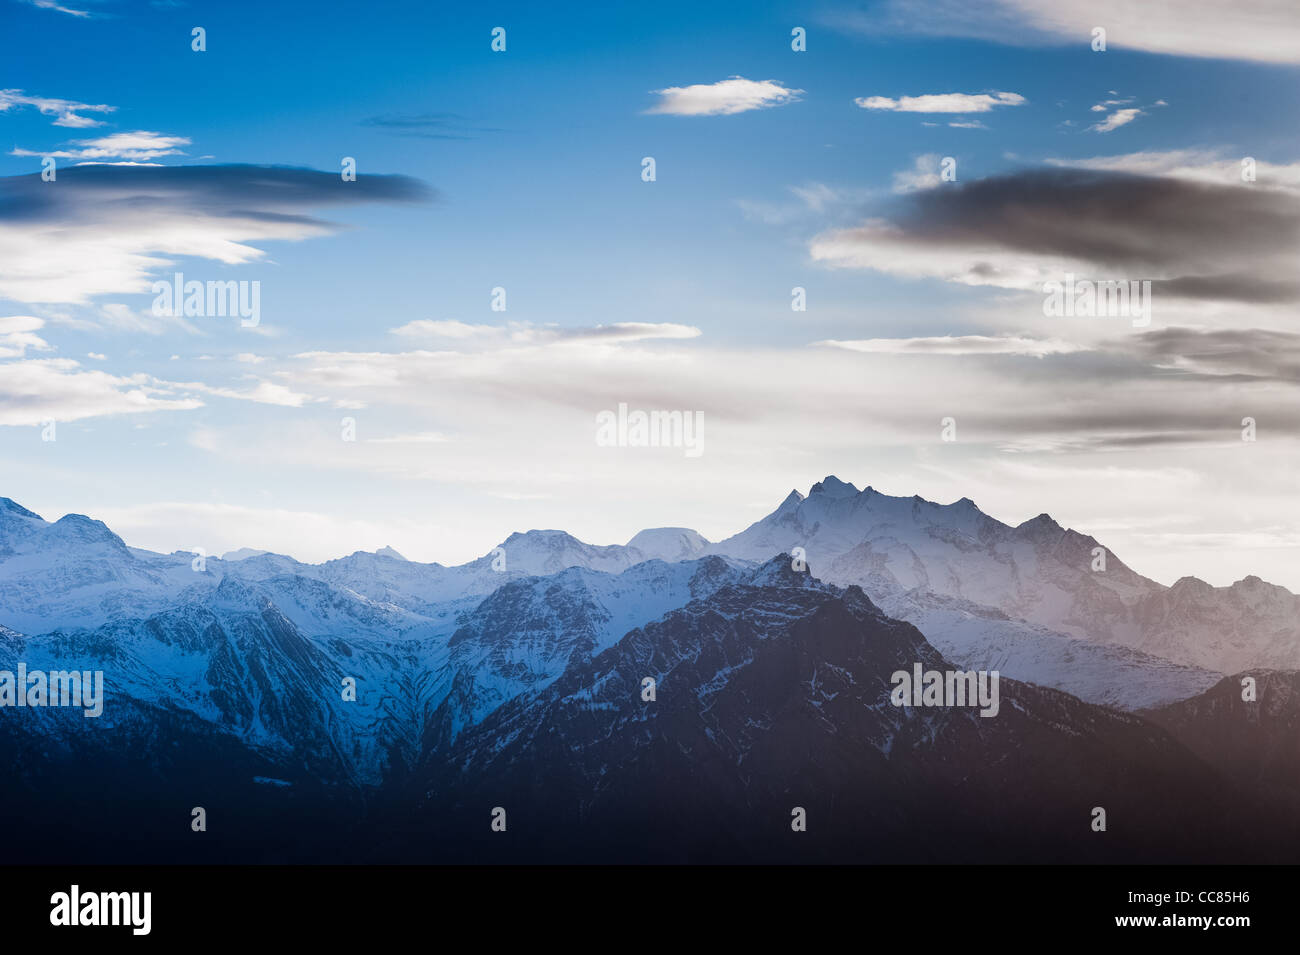 Scenic view of the Mischabel mountain range from Bettmeralp, Wallis, Switzerland - Stock Image